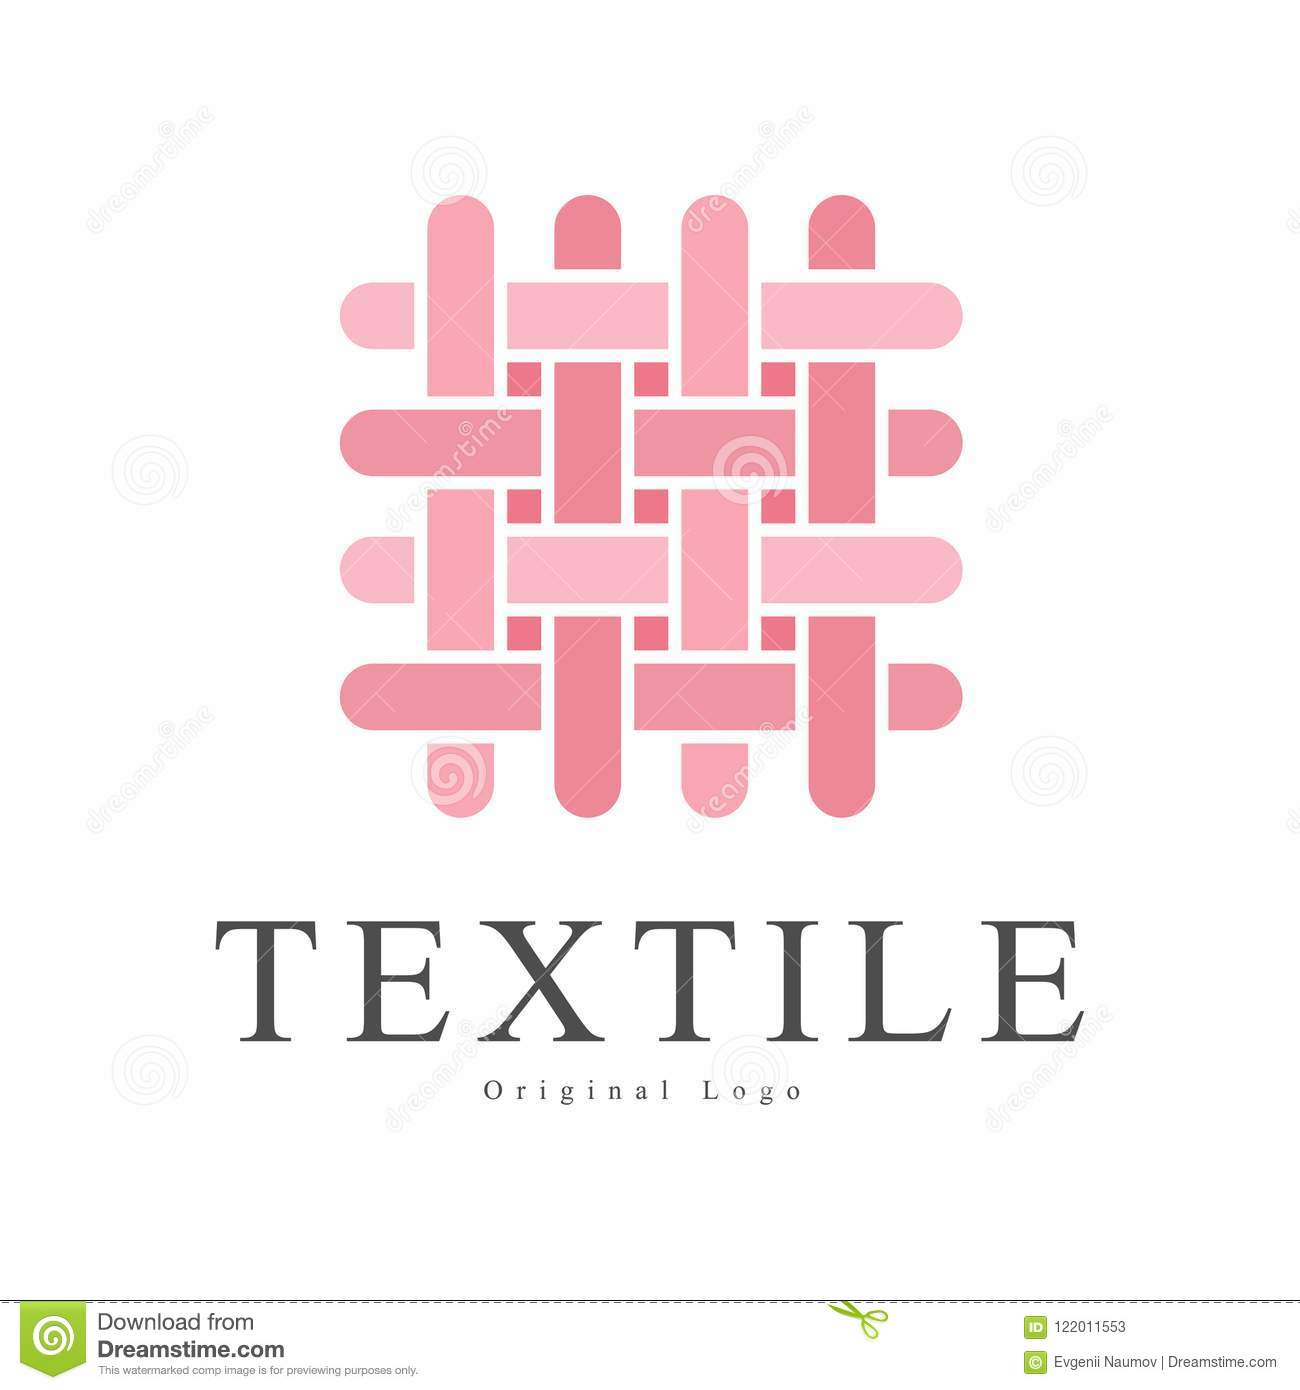 Textile Original Logo Design Creative Sign For Company Identity